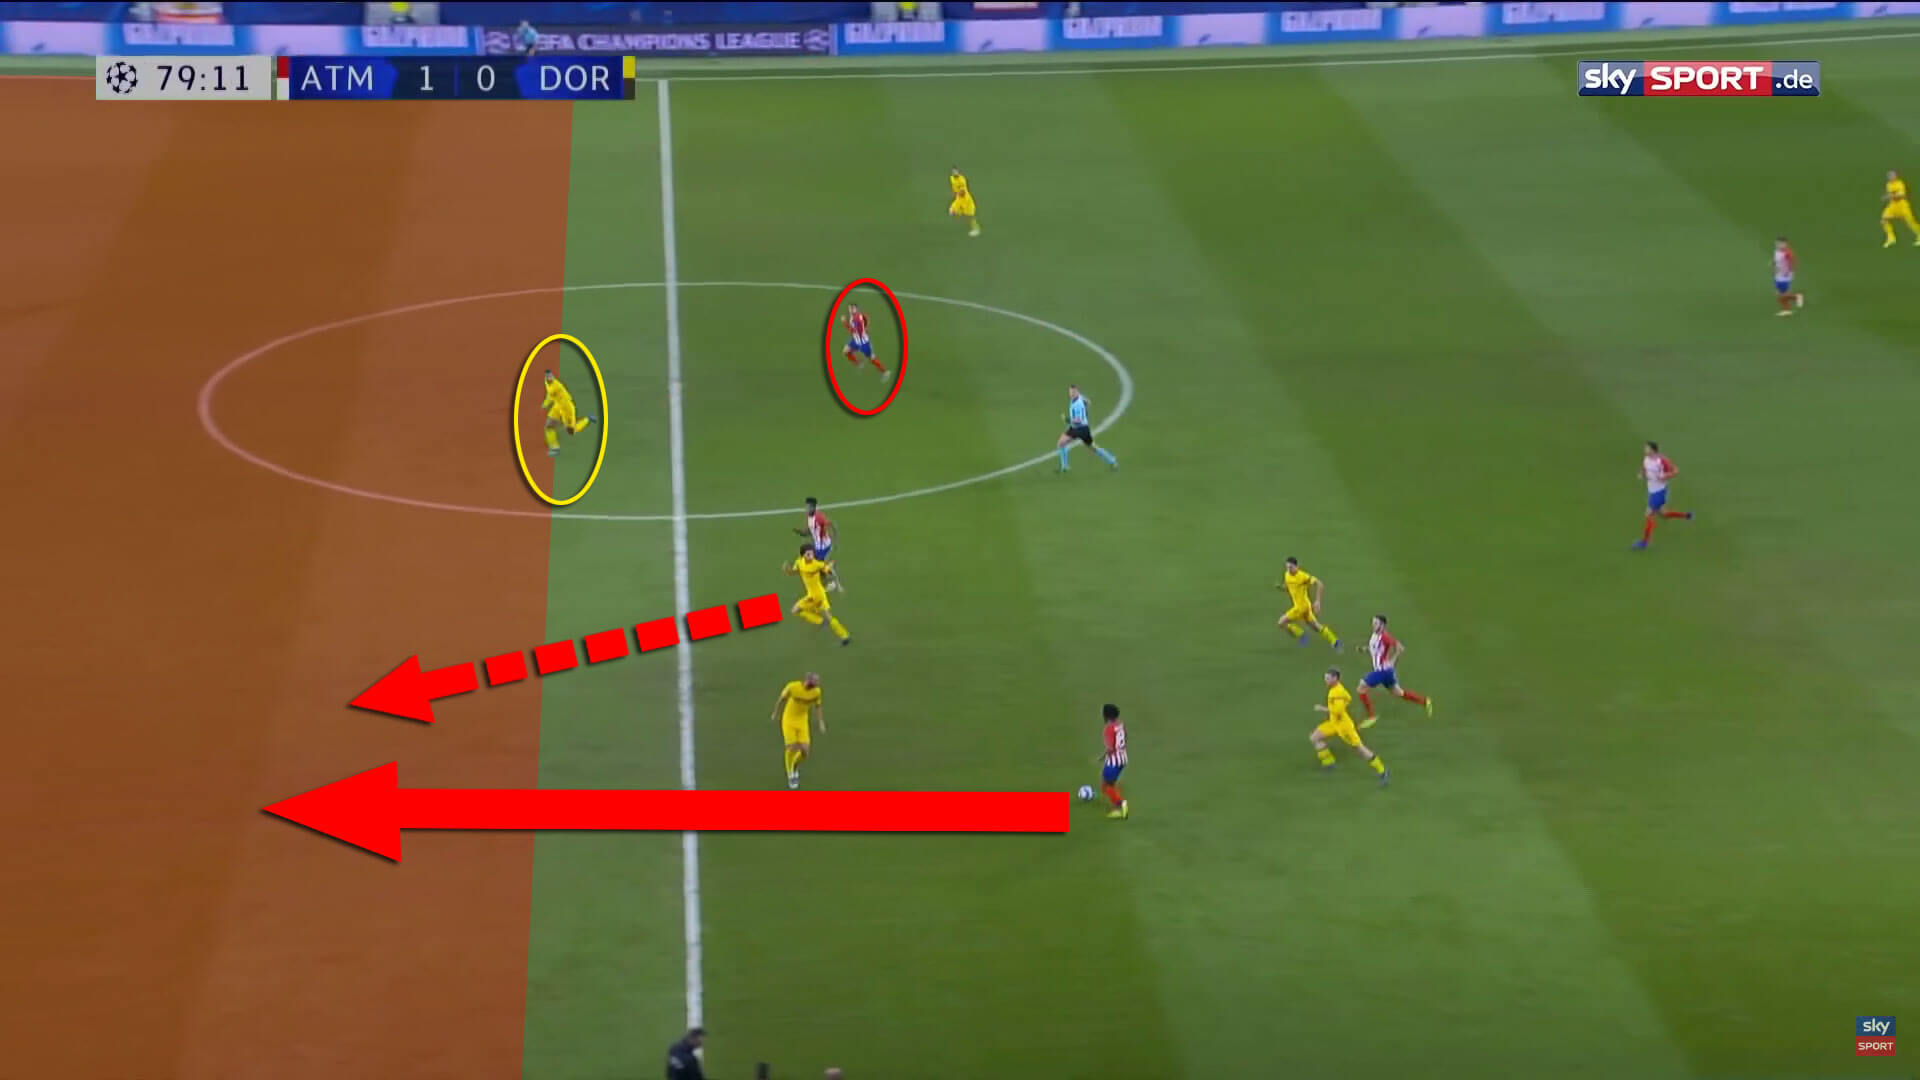 Counter-attacking coaching tactical analysis